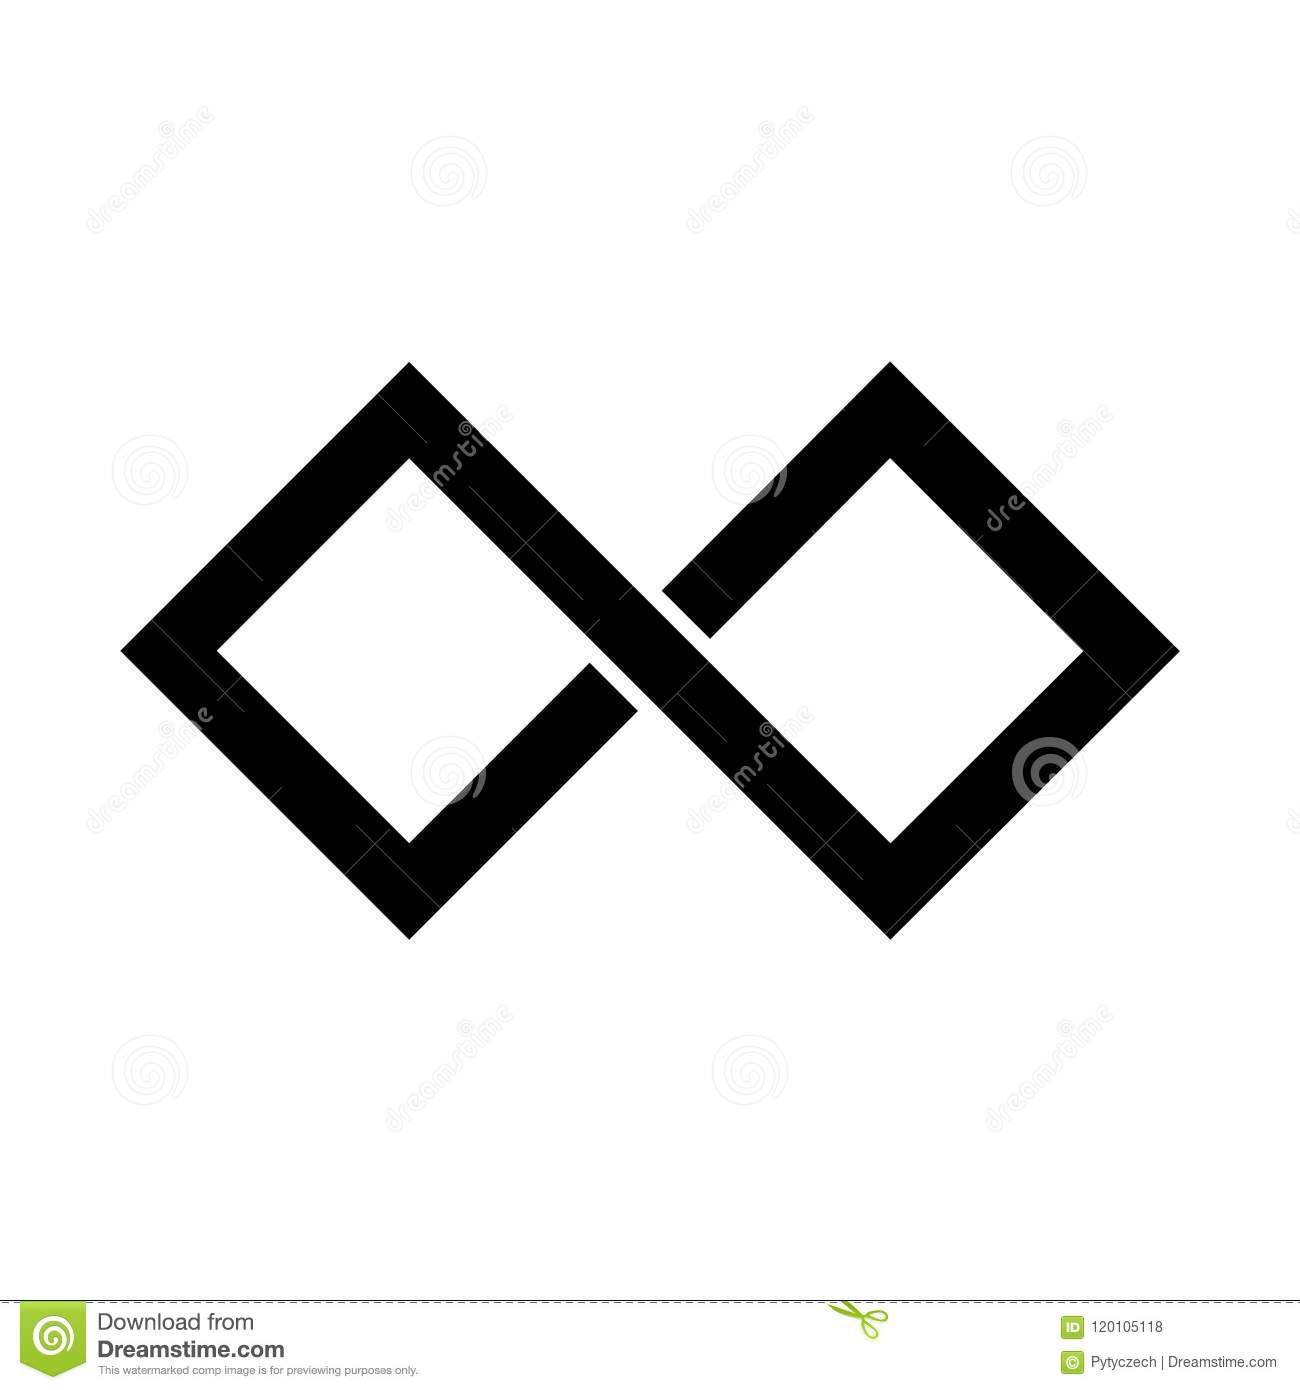 8d403a1401649 Black infinity symbol icon. Rectangular shape with sharp corners. Simple  flat vector design element. More similar stock illustrations